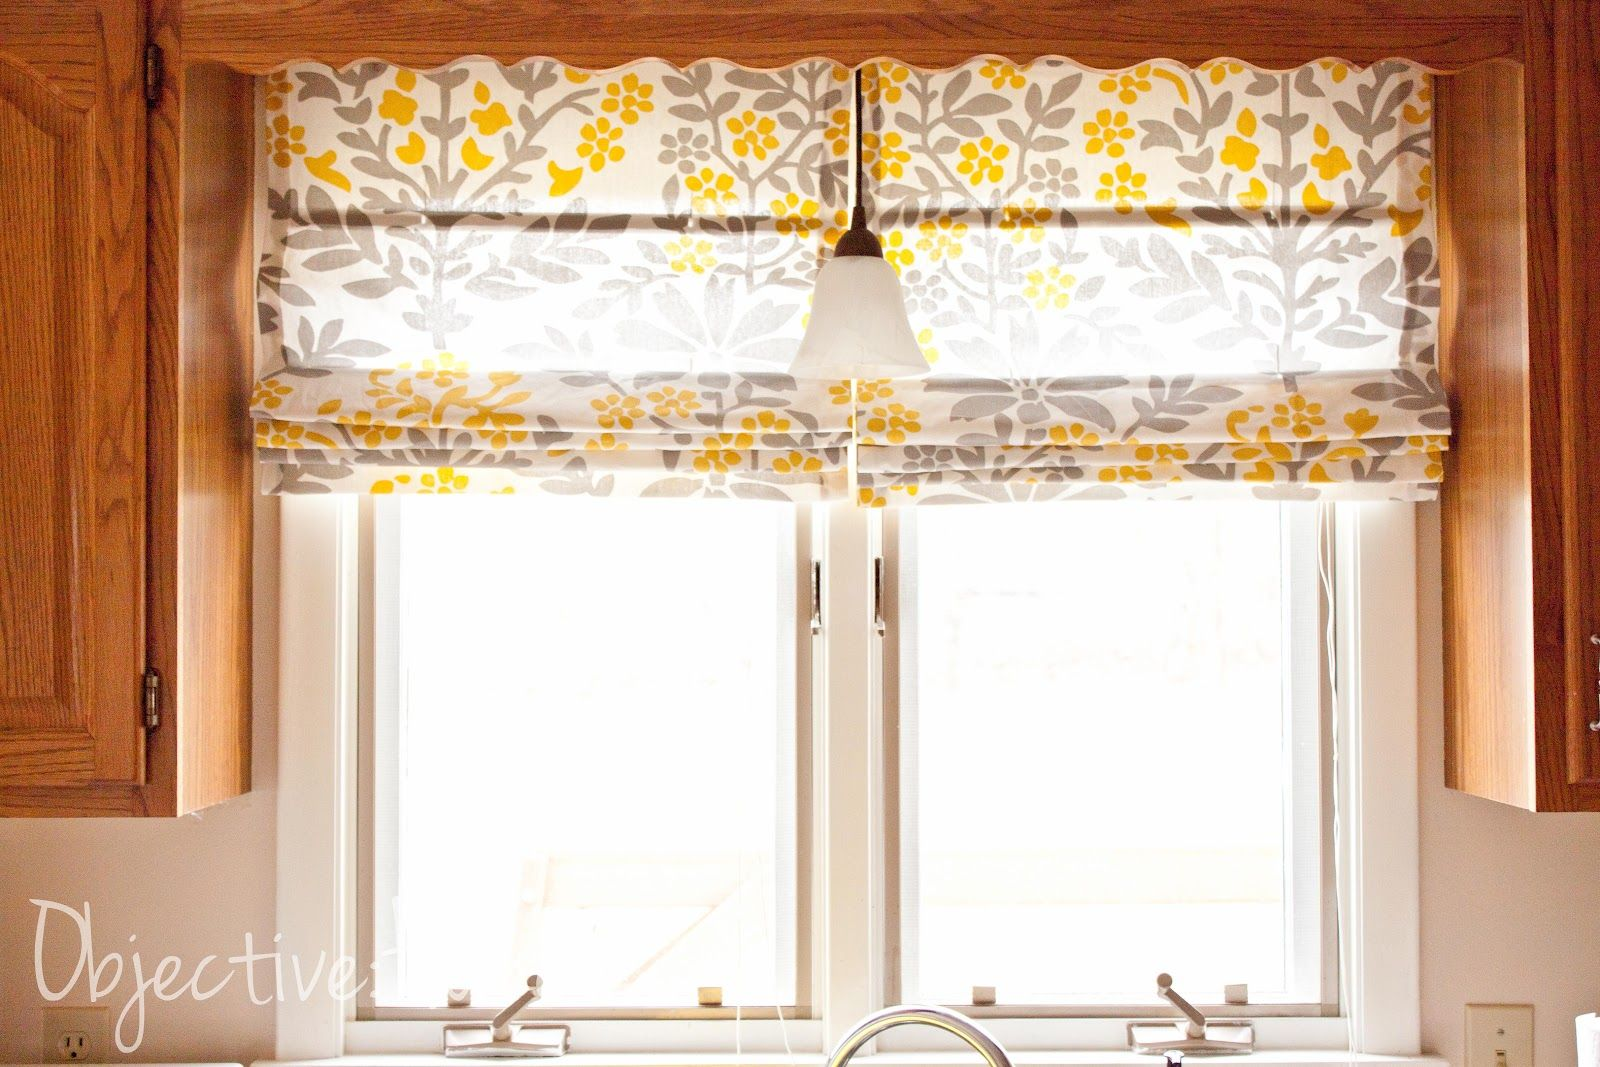 Objectivehome easy no sew roman shades for kitchen